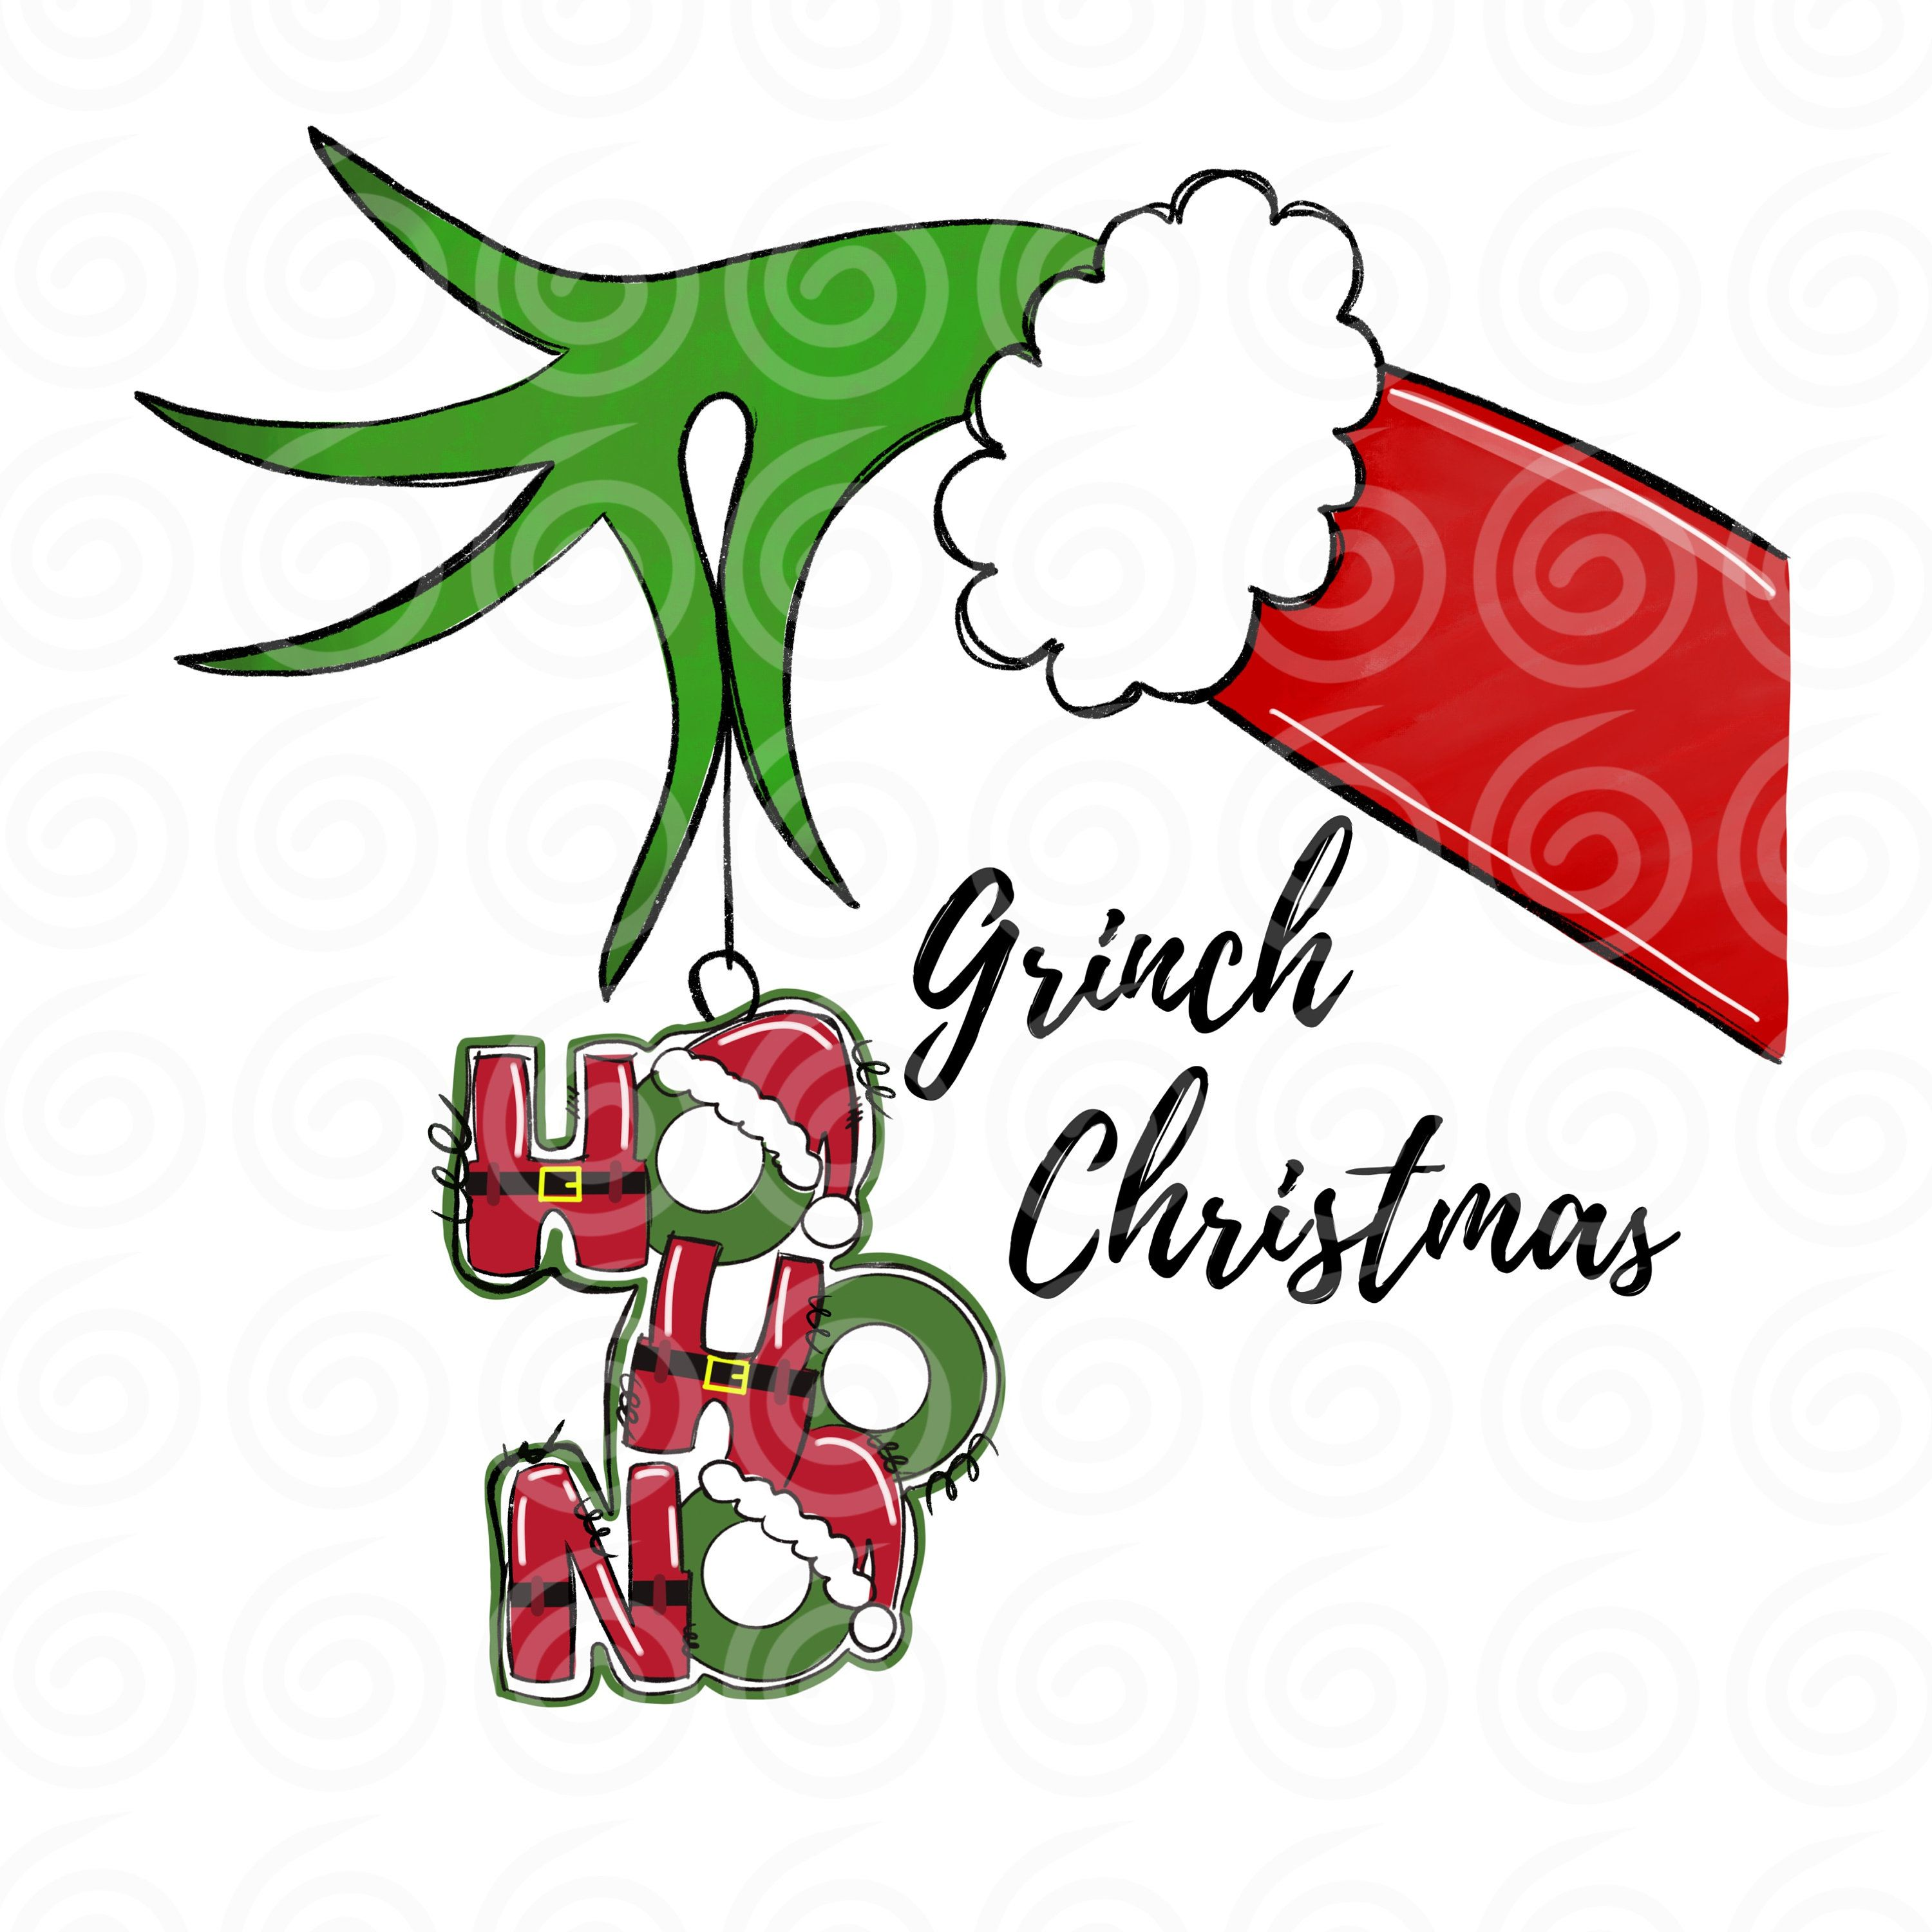 Grinch Ho Ho Ho Png Grinch Sublime Gift Grinch Christmas Etsy In 2021 Grinch Christmas Grinch Christmas Party Christmas Drawing